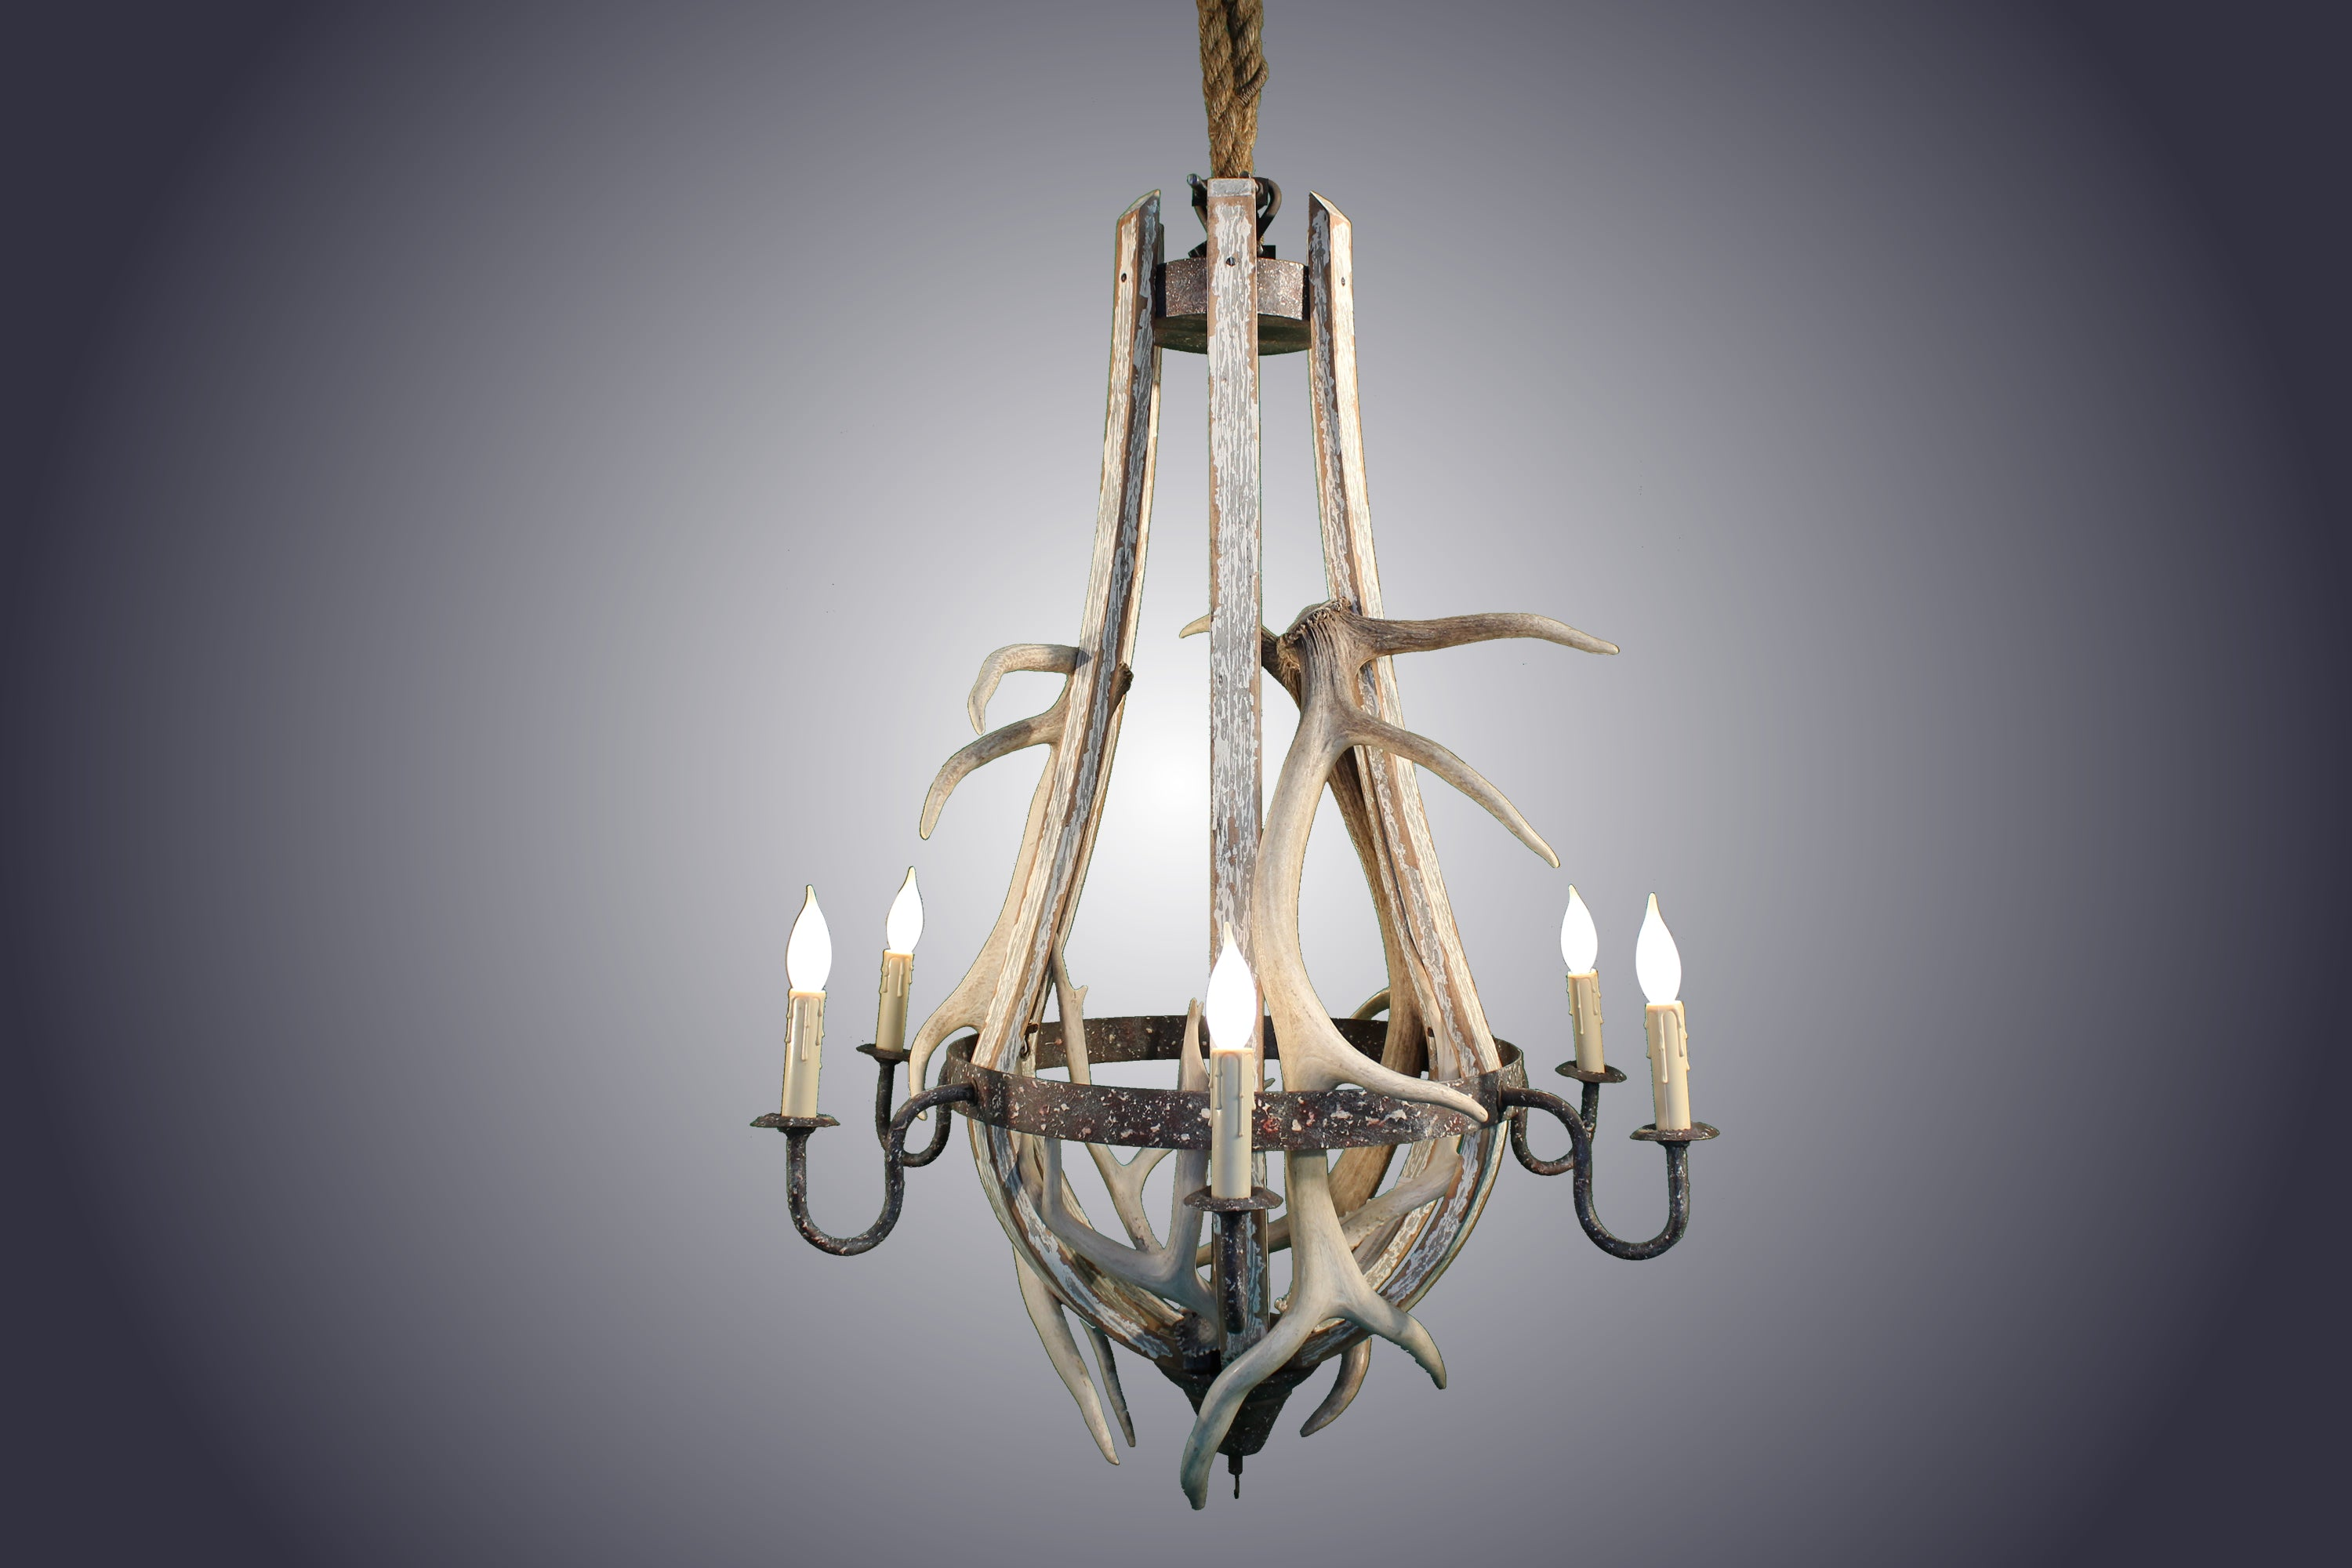 6 light Tier-Drop 3 Elk/3 Mule Deer Antler Chandelier (AWC-52) - Antlerworx